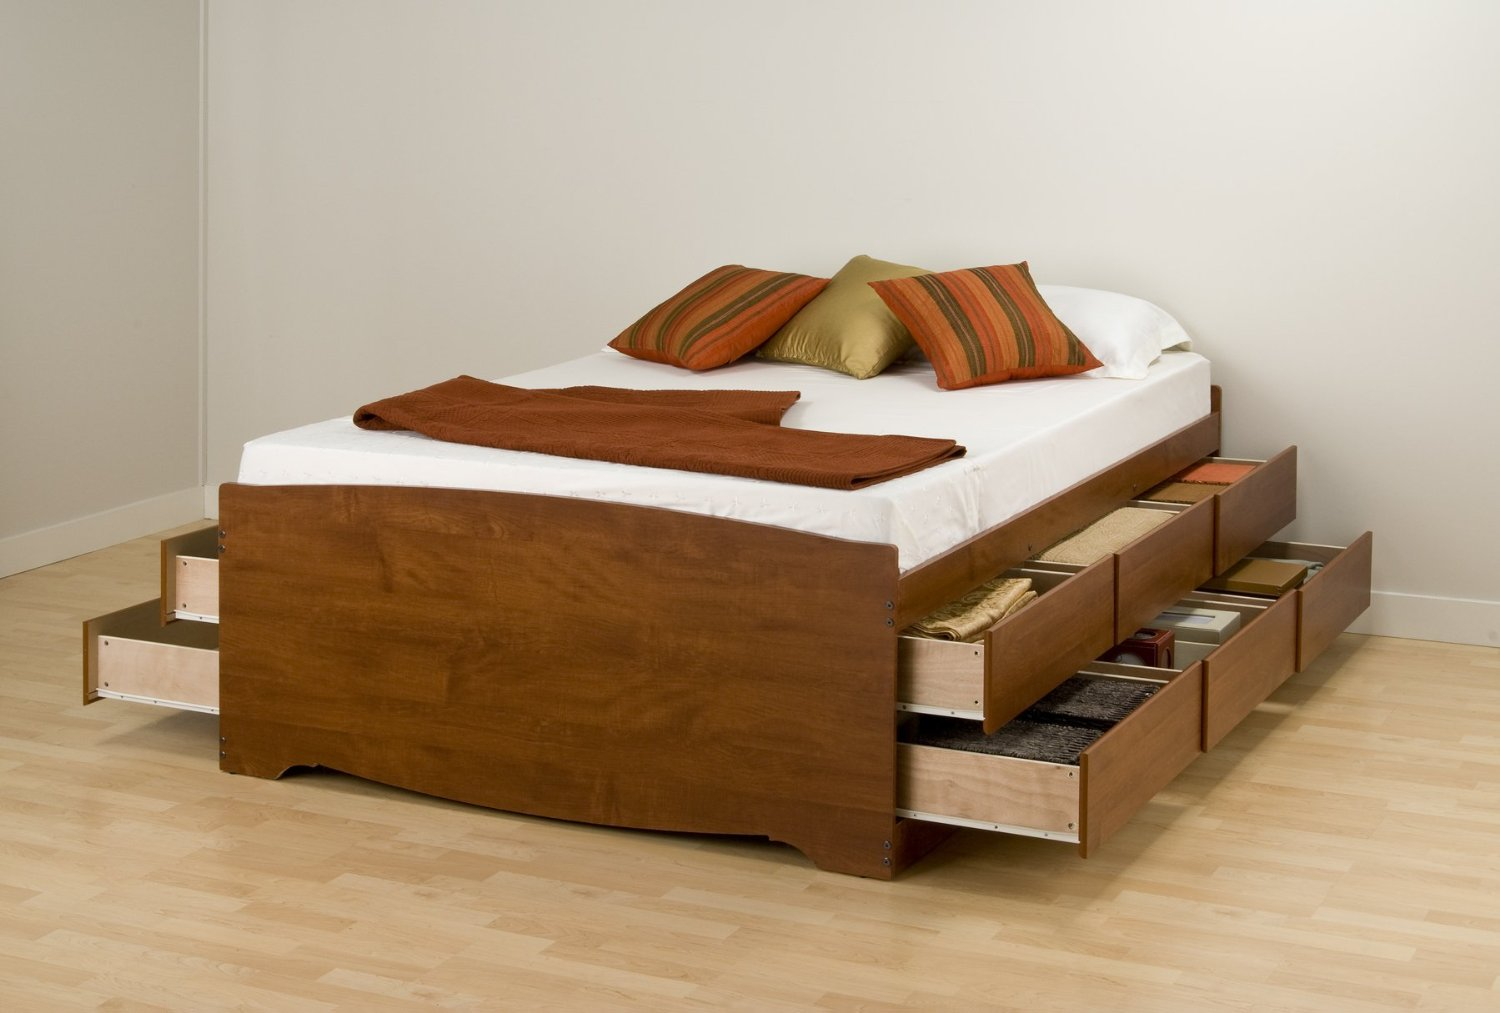 Bed With Drawers Underneath Awesome Twin Bed With Drawers Underneath | Homesfeed